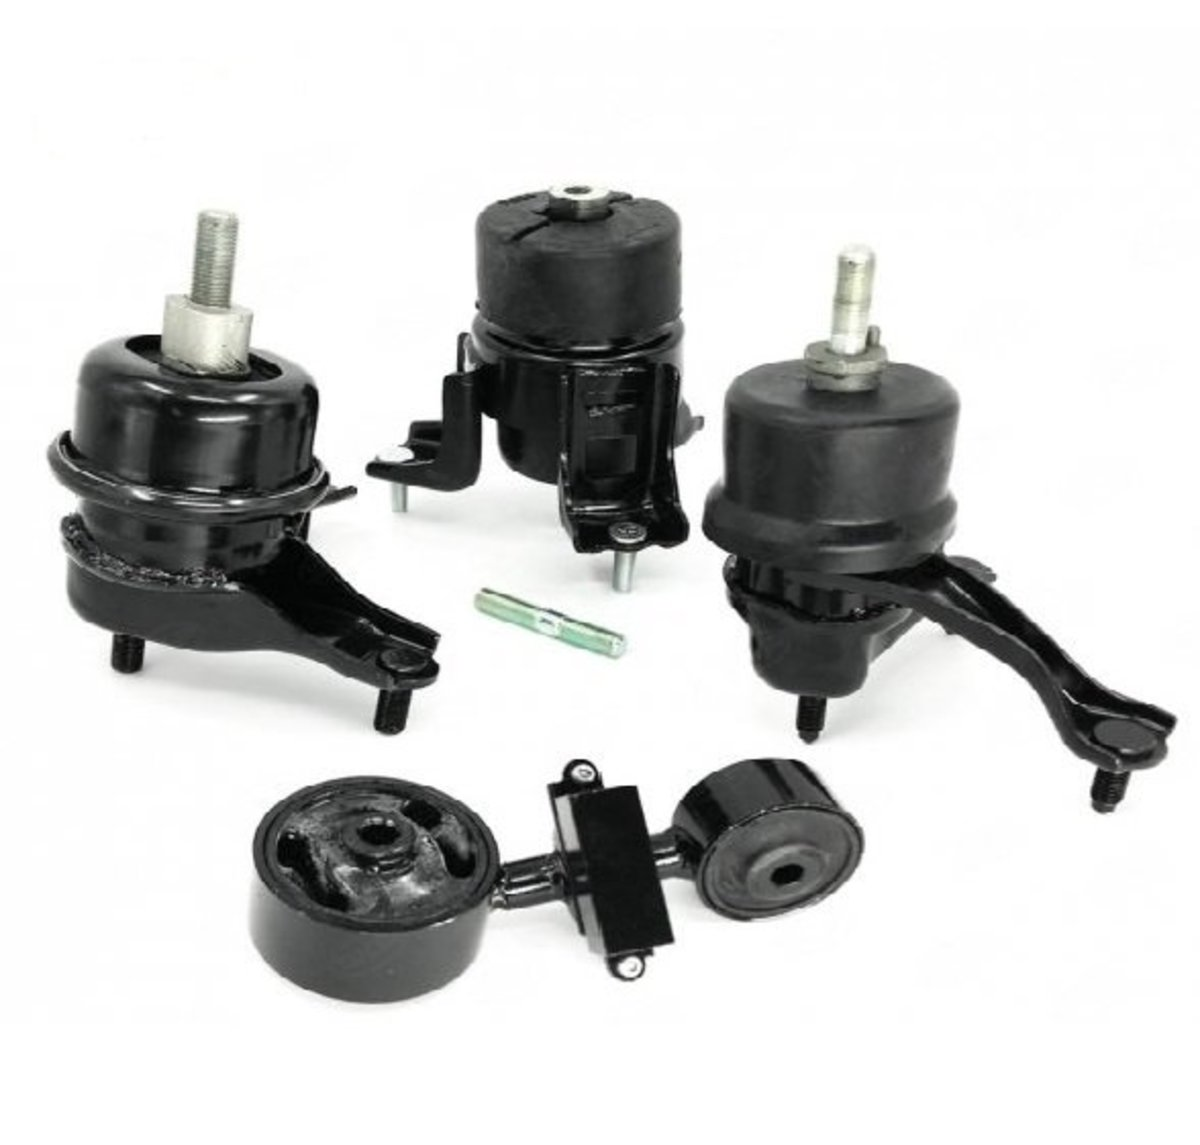 Replacement motor mounts for a 2002-2006 Toyota Camry